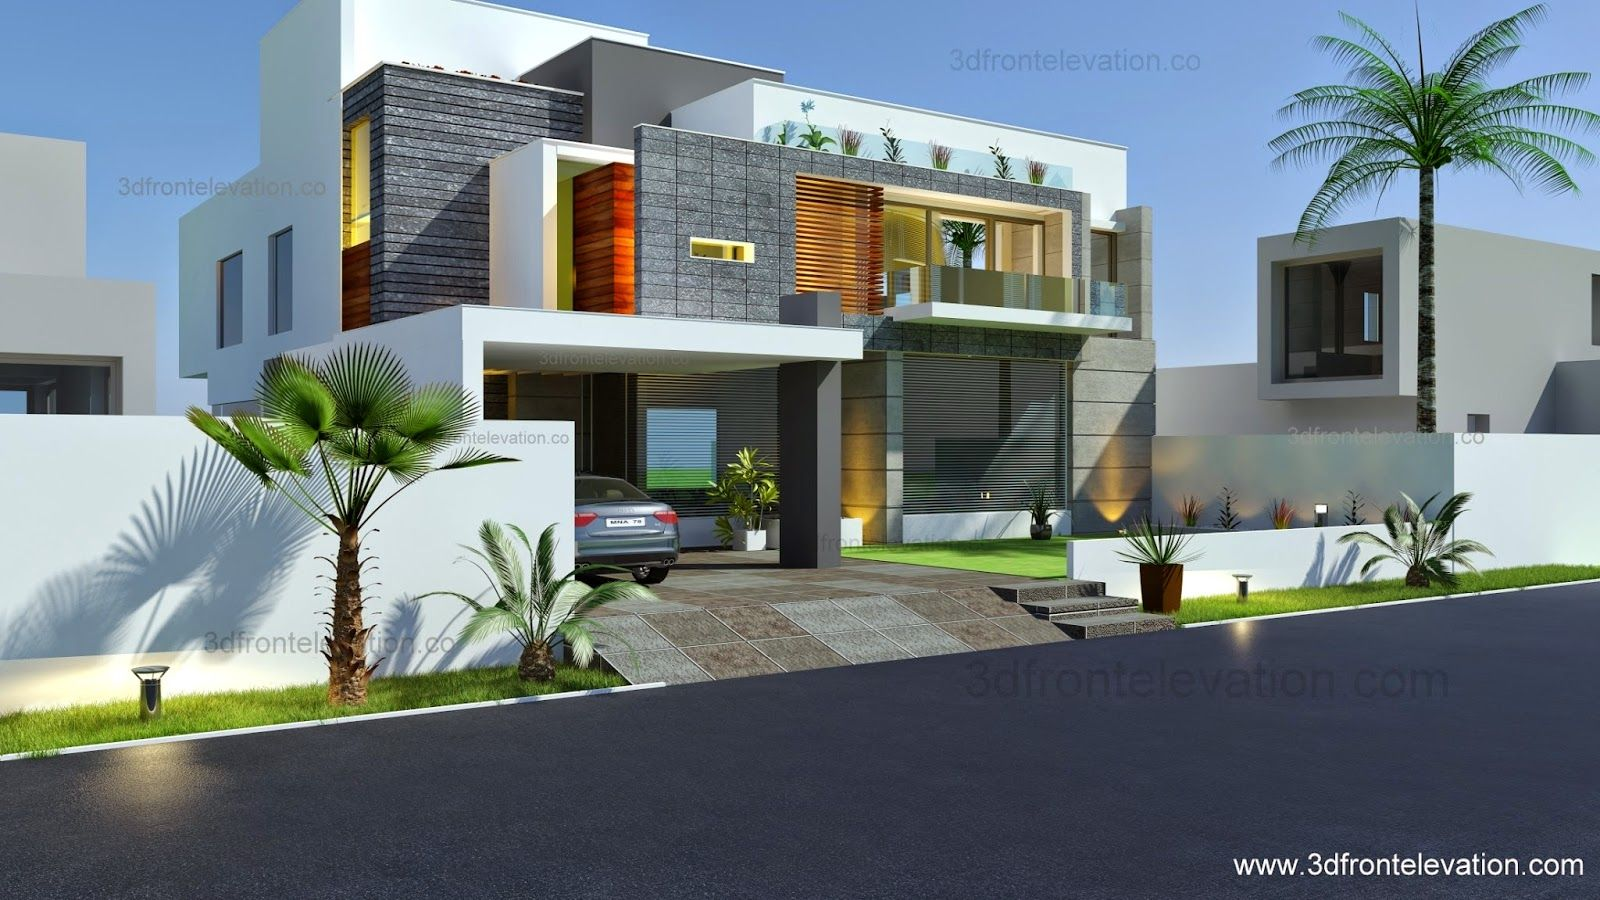 3d front beautiful modern contemporary house elevation 2015 house plan design Exterior home design ideas 2015